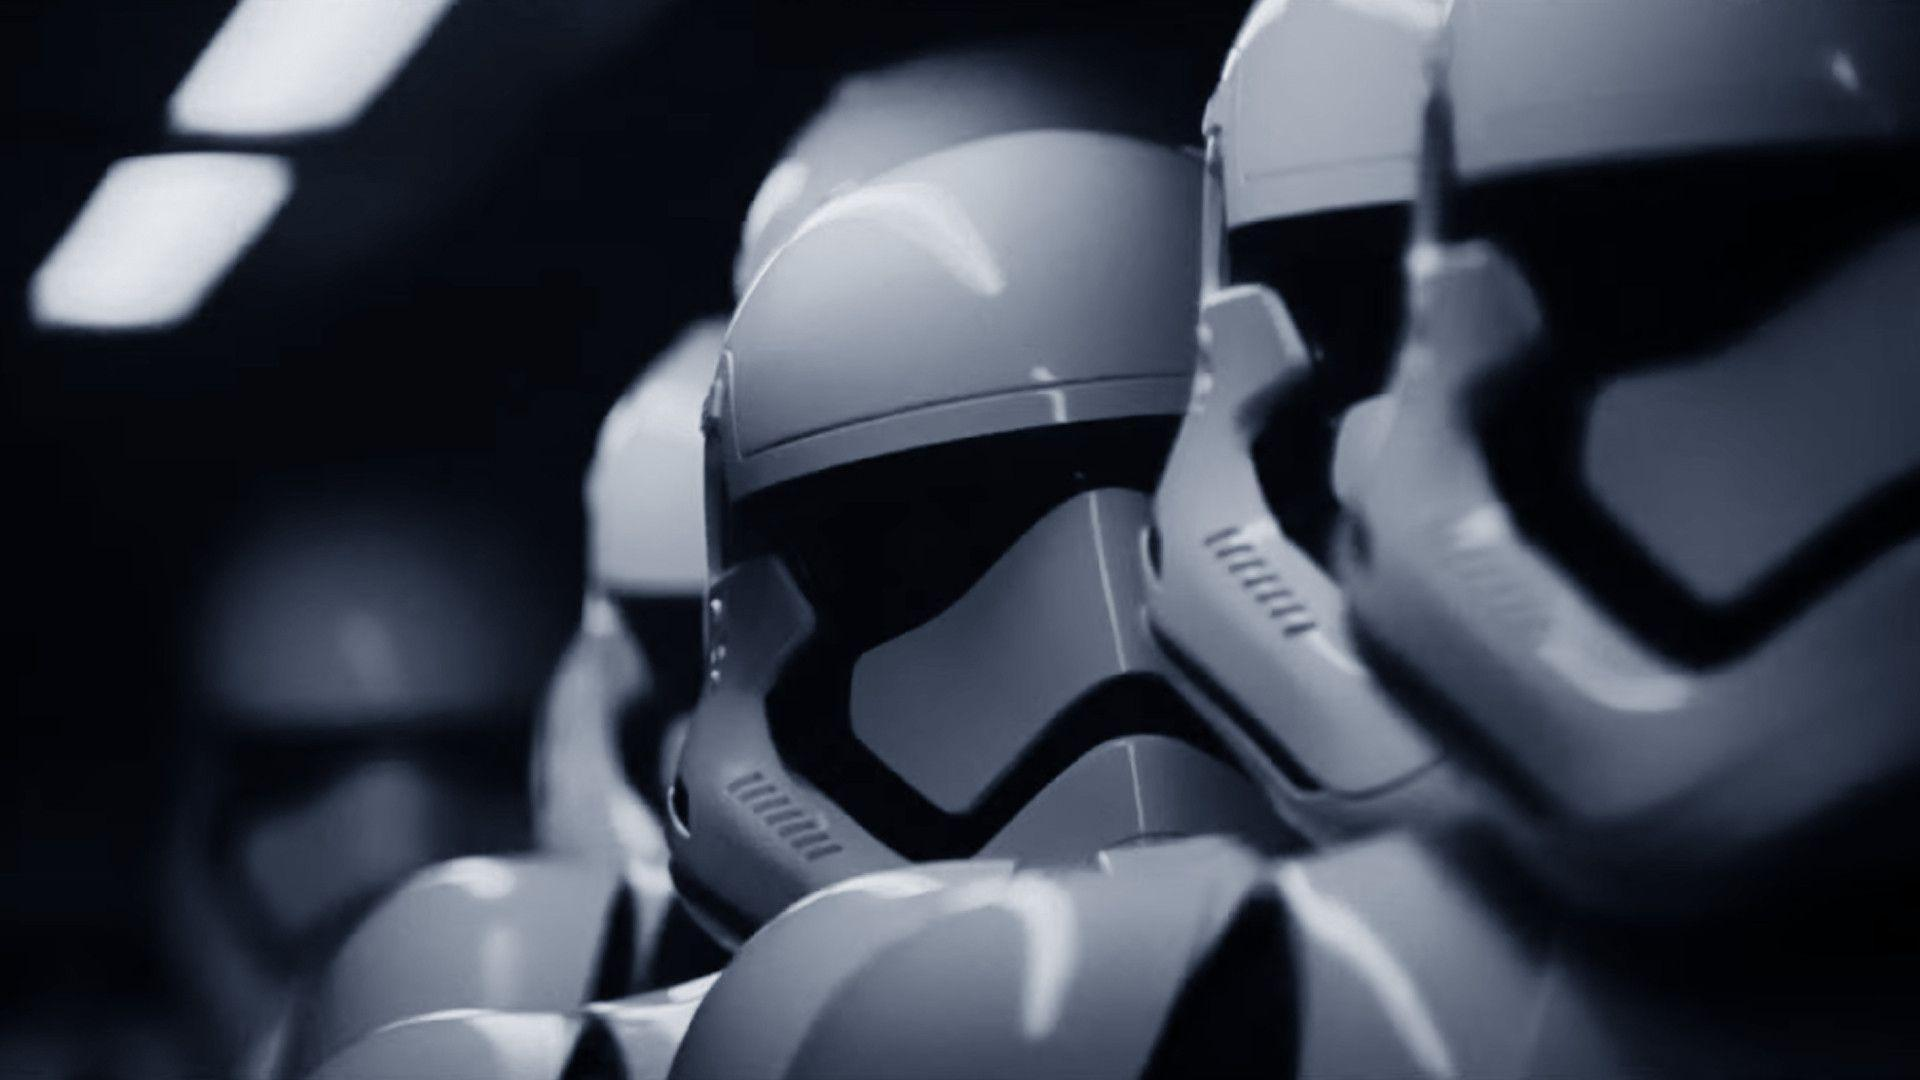 The Force Awakens Stormtroopers Wallpaper by HD Wallpapers Daily